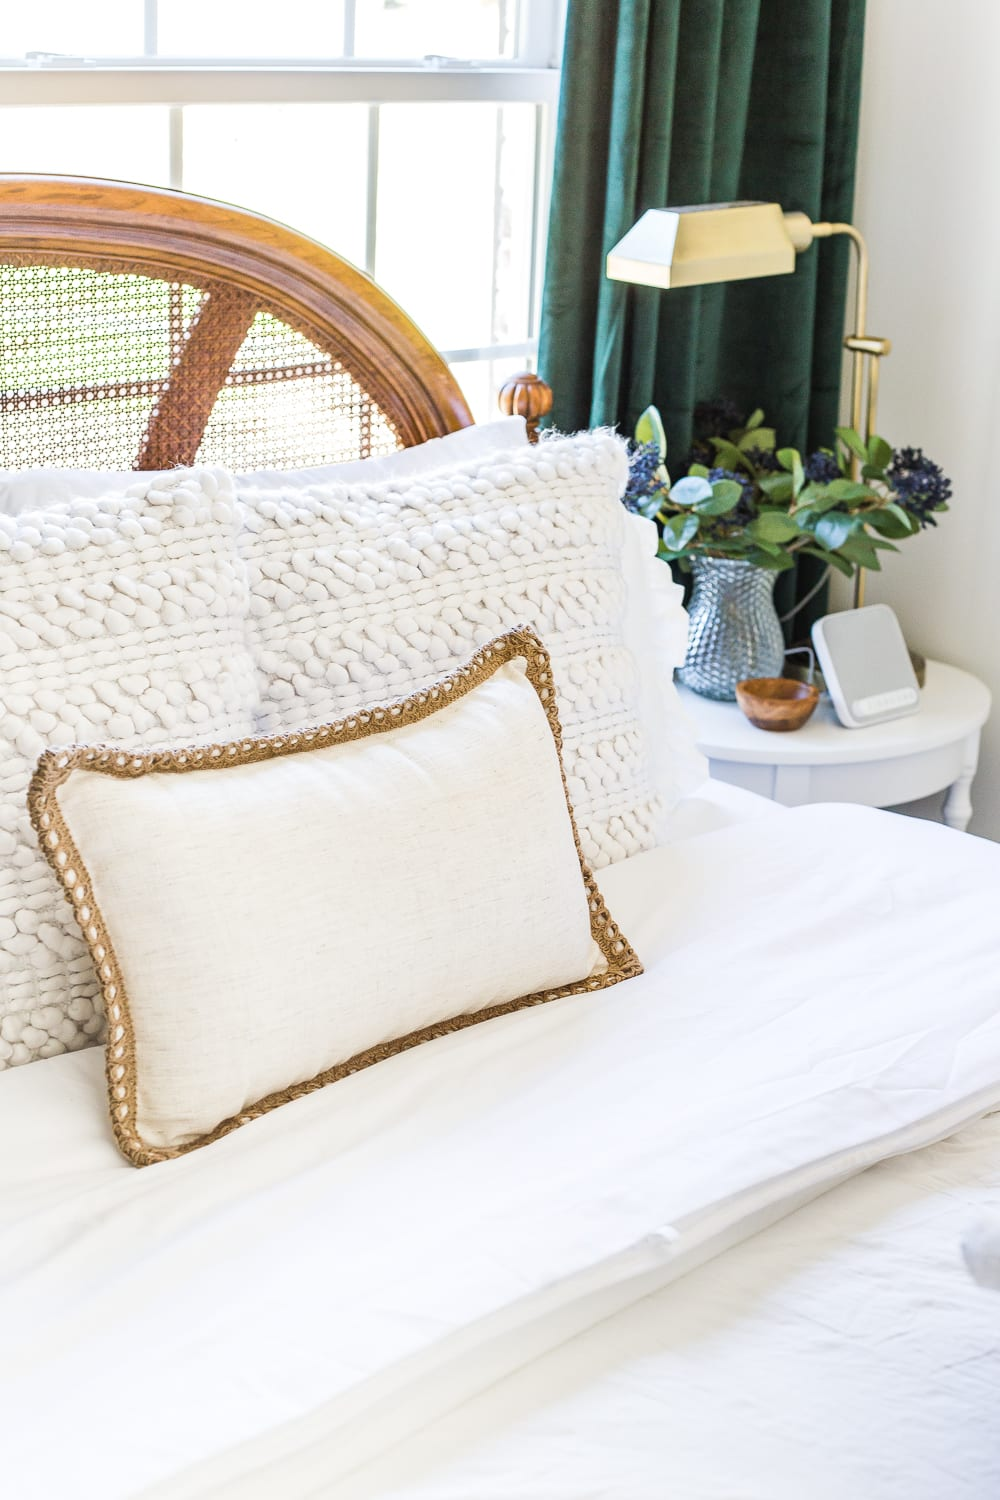 38 Guest Bedroom Essentials | Invest in soft sheets and have 2-3 types of pillows for added comfort.